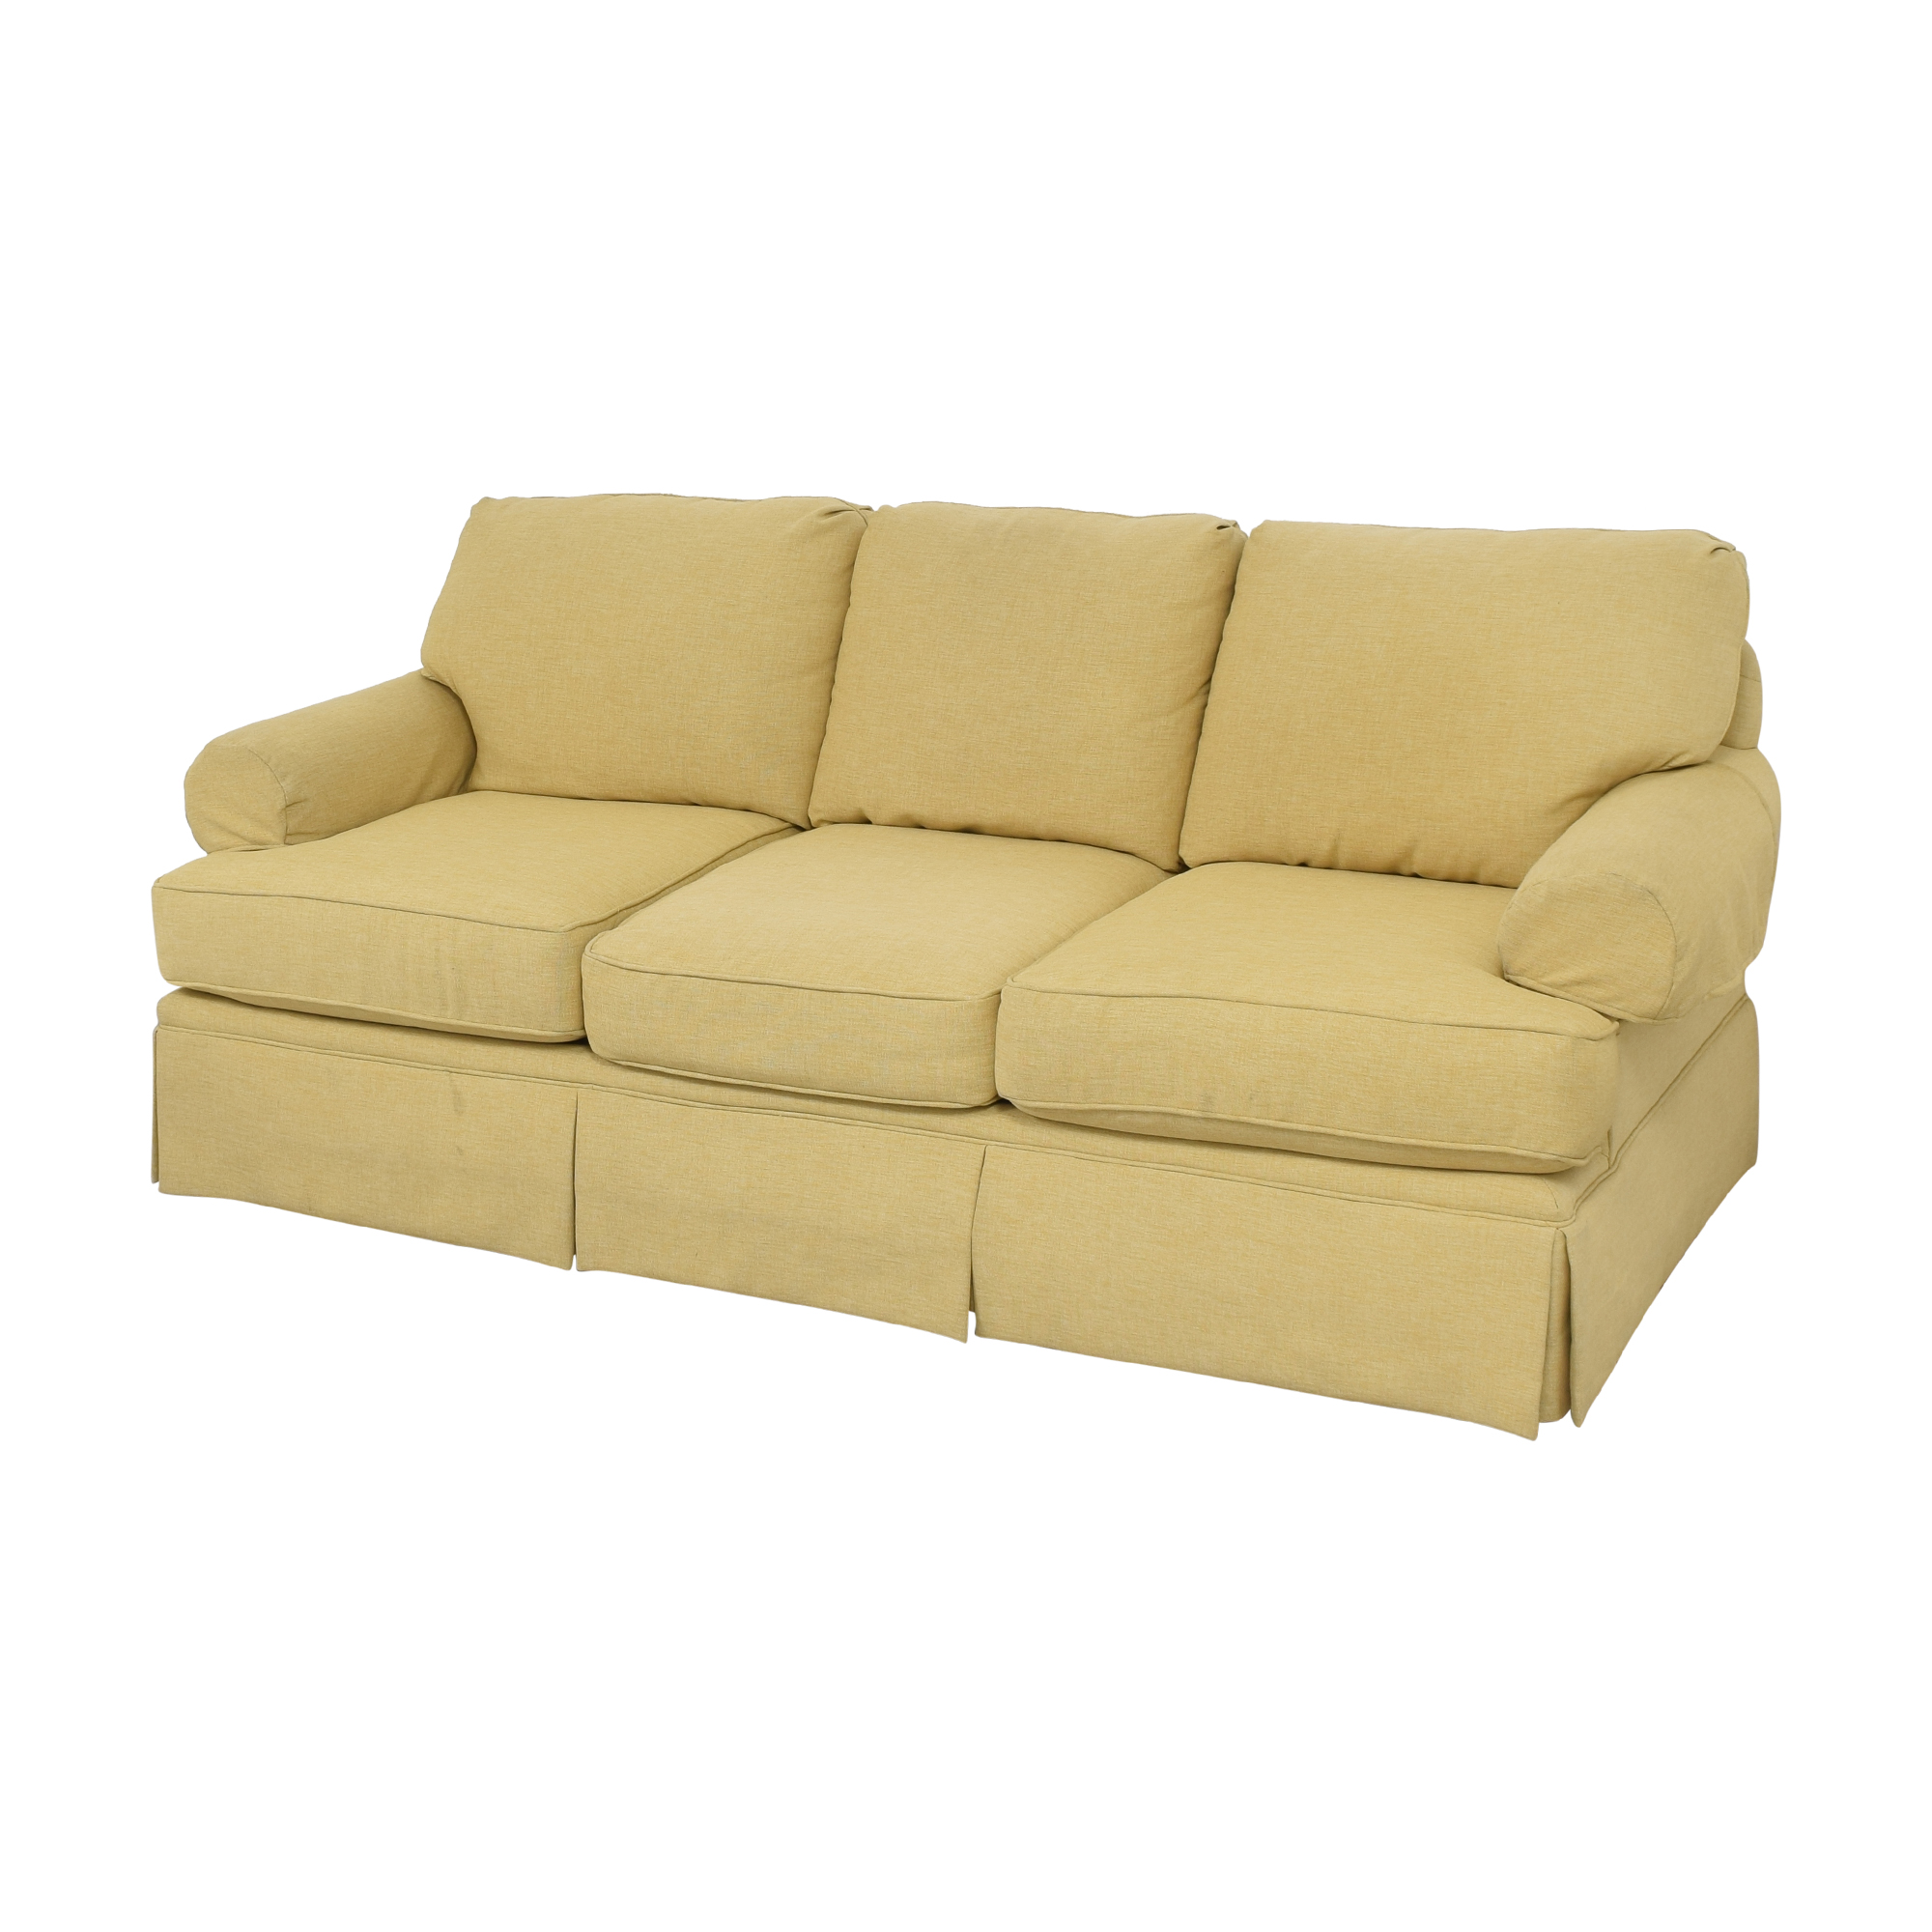 buy Craftmaster Furniture Three Cushion Sofa Craftmaster Furniture Classic Sofas